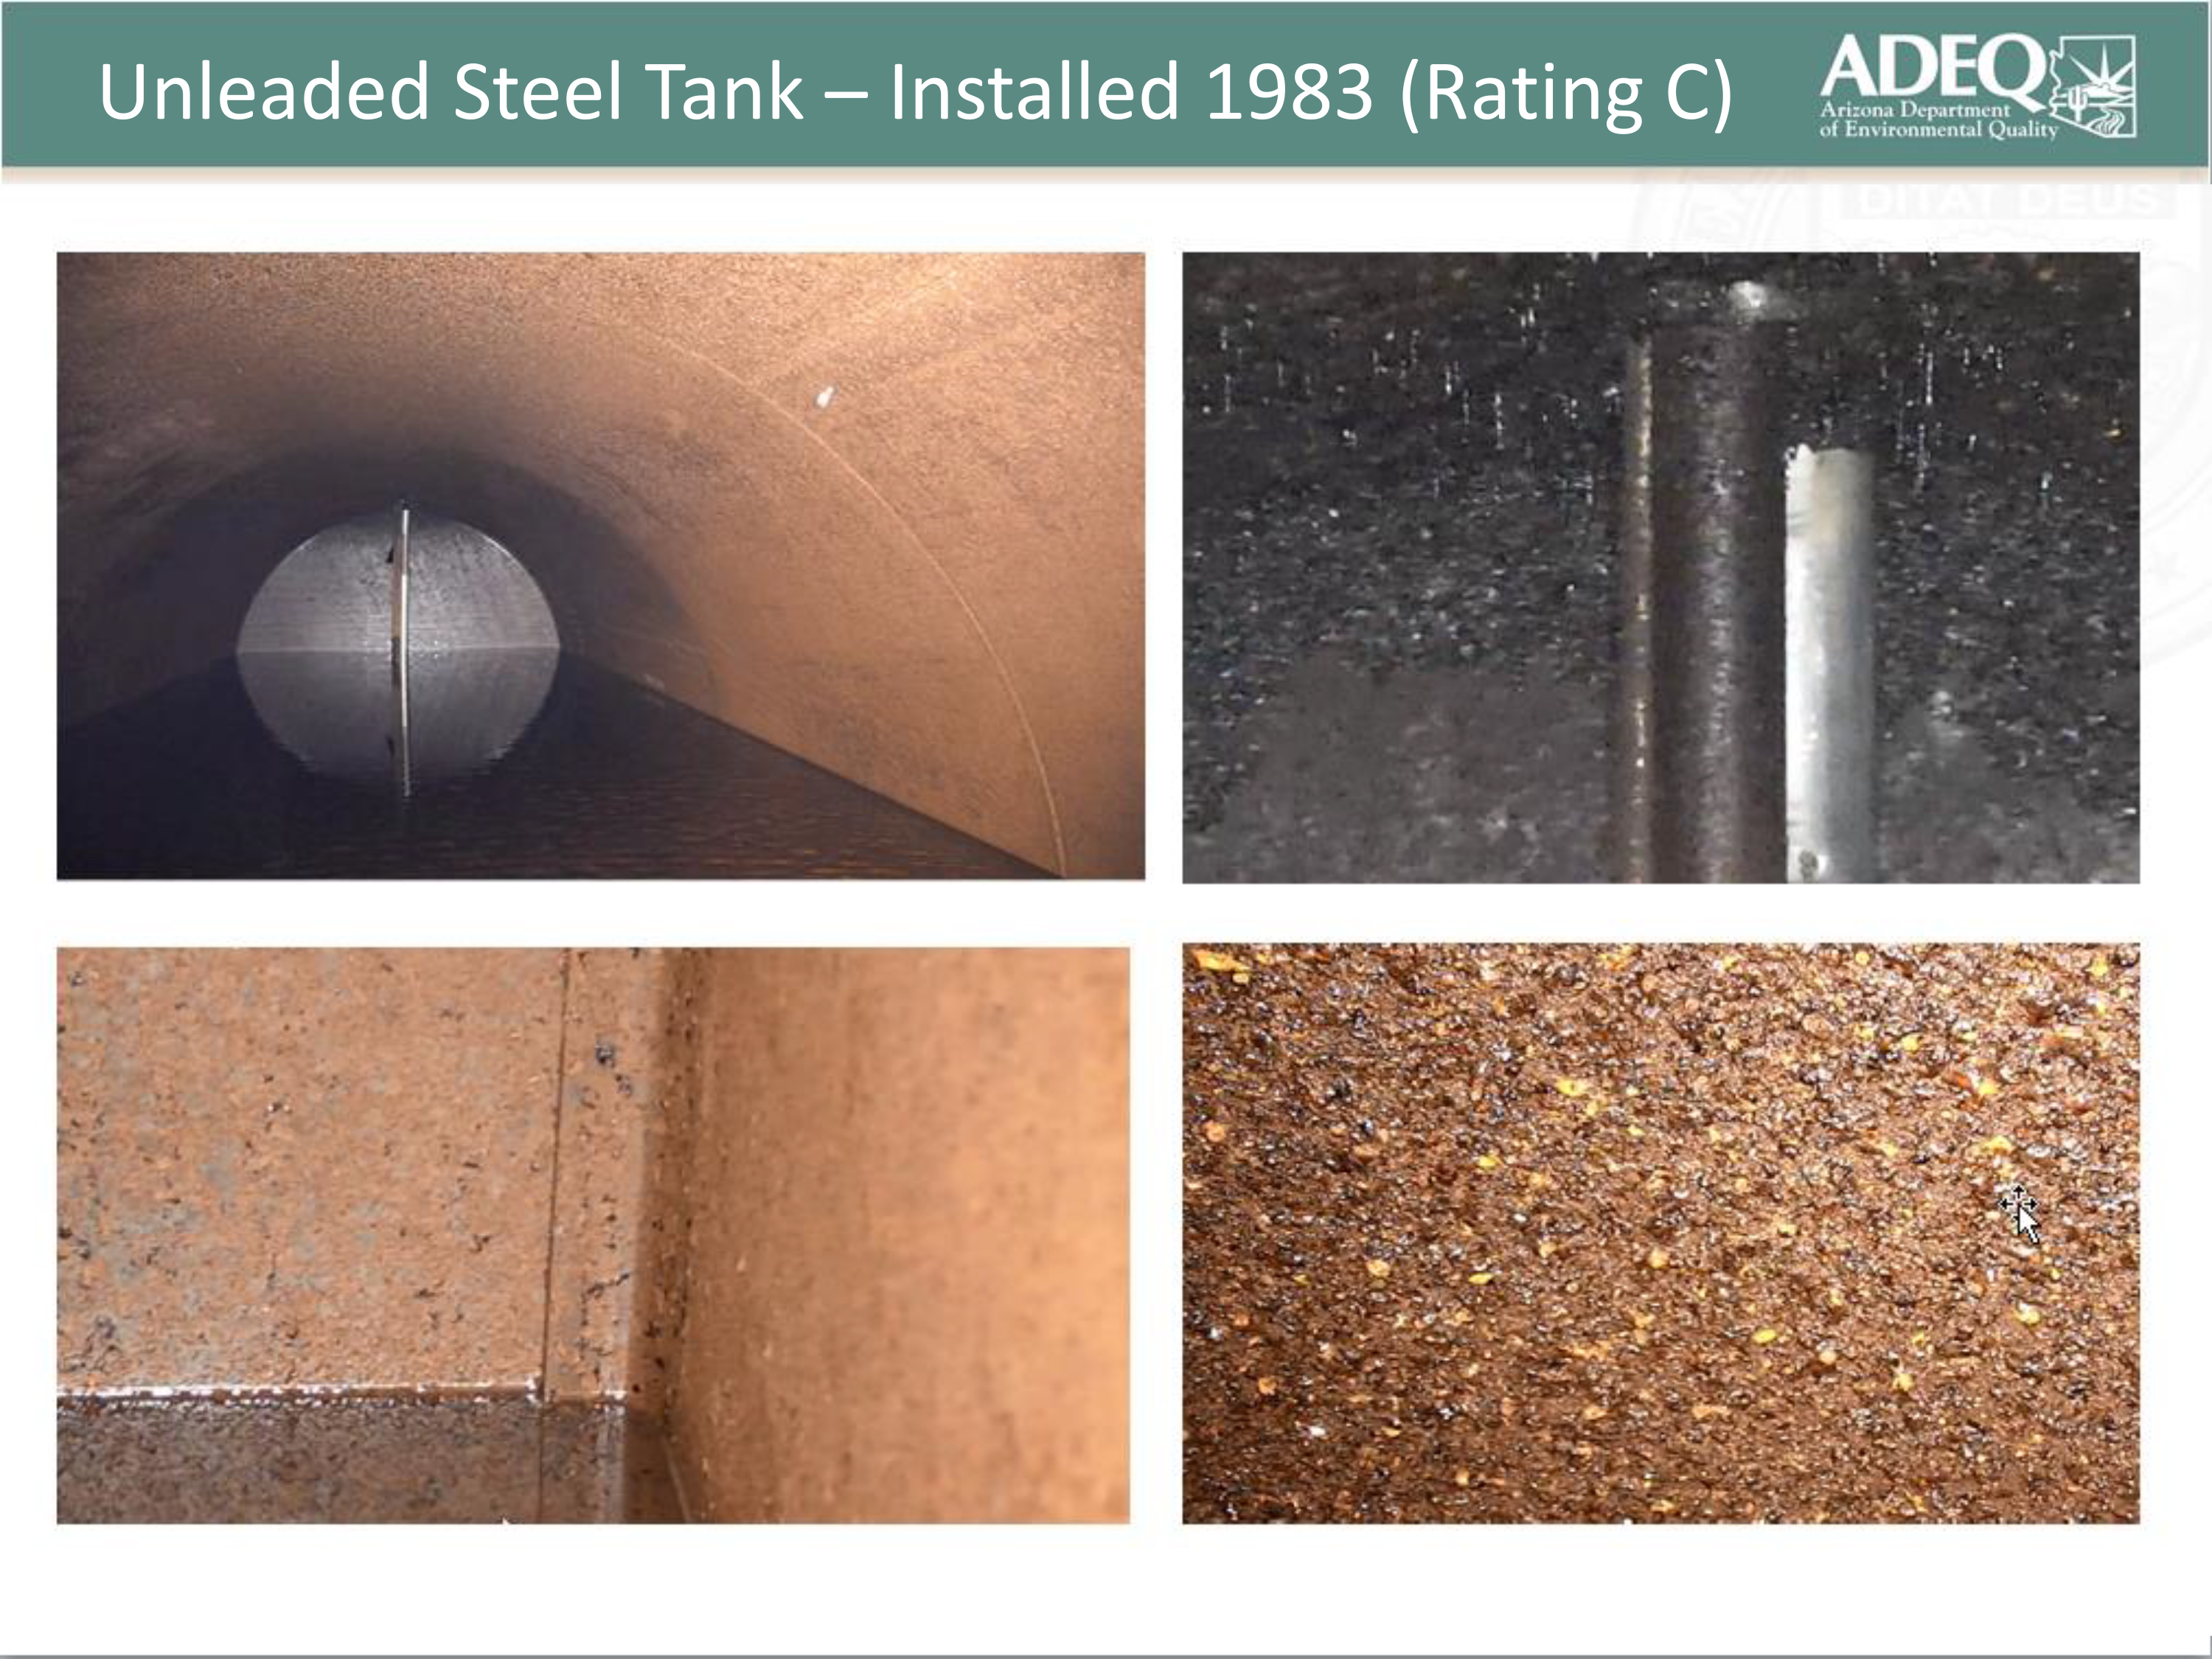 Unleaded Steel Tank Installed 1983 Rating C